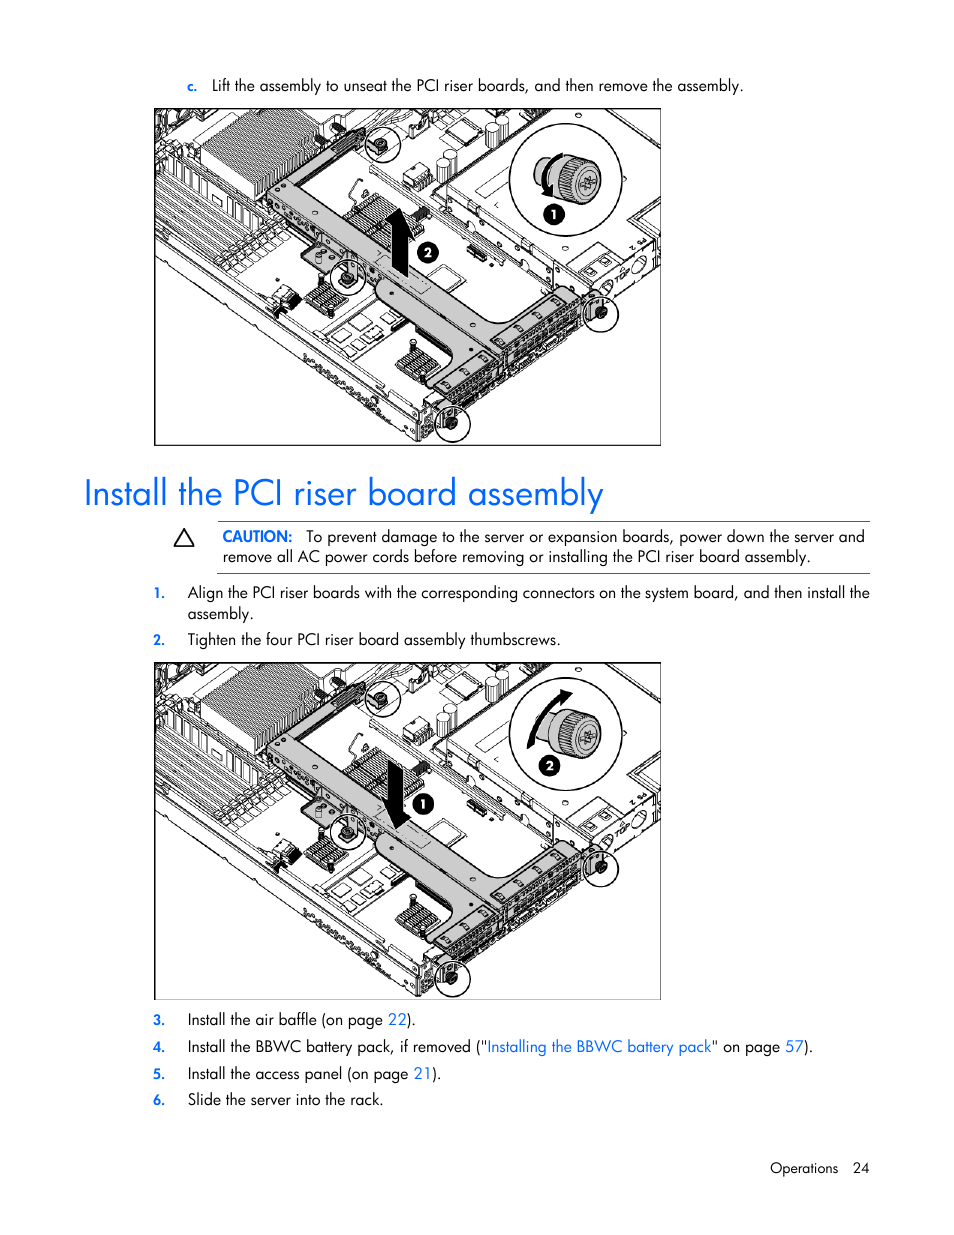 Install the pci riser board assembly | HP ProLiant DL360 G6